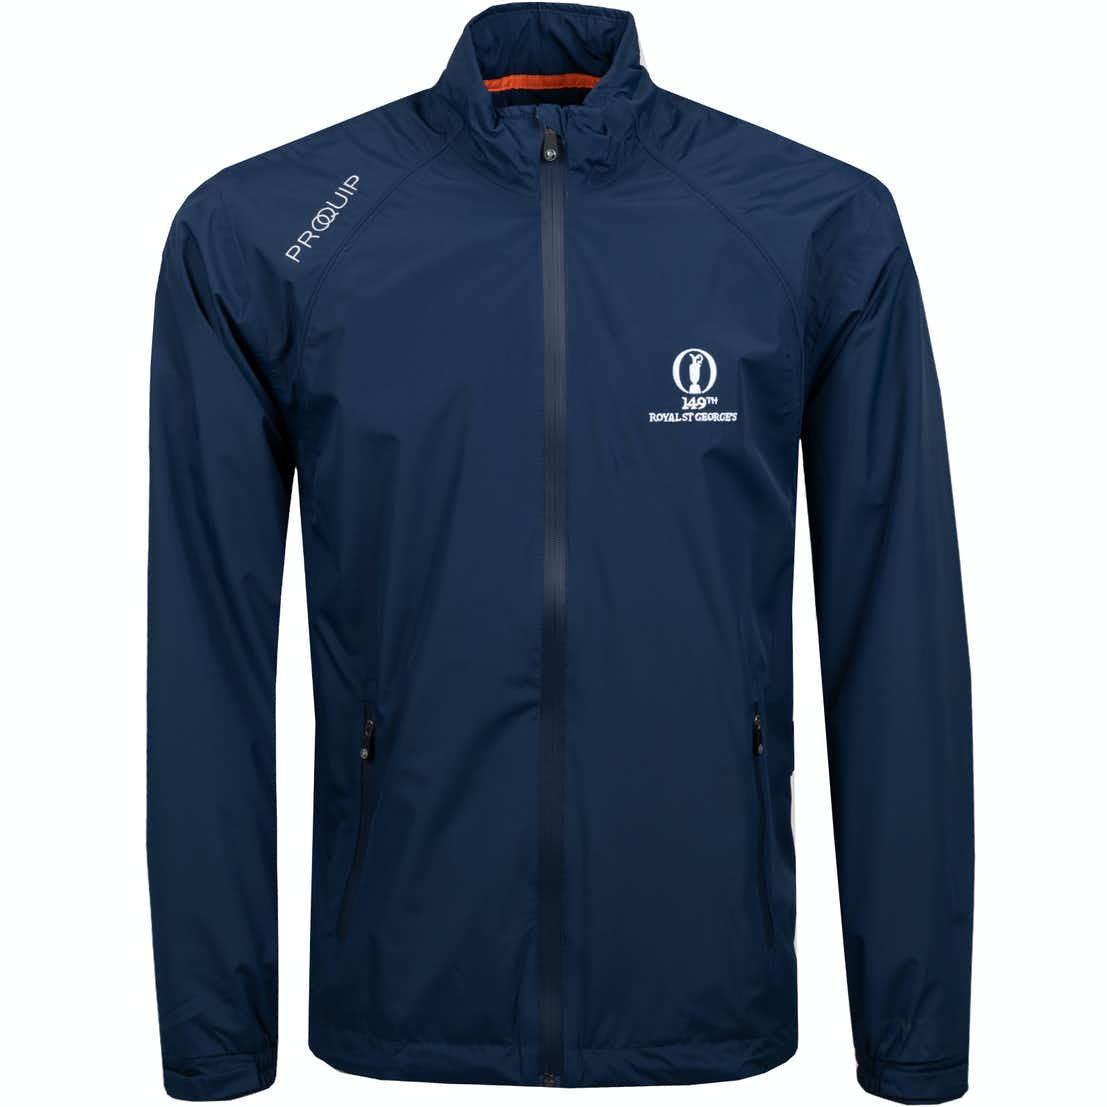 149th Royal St George's Tempest Waterproof Jacket - Blue